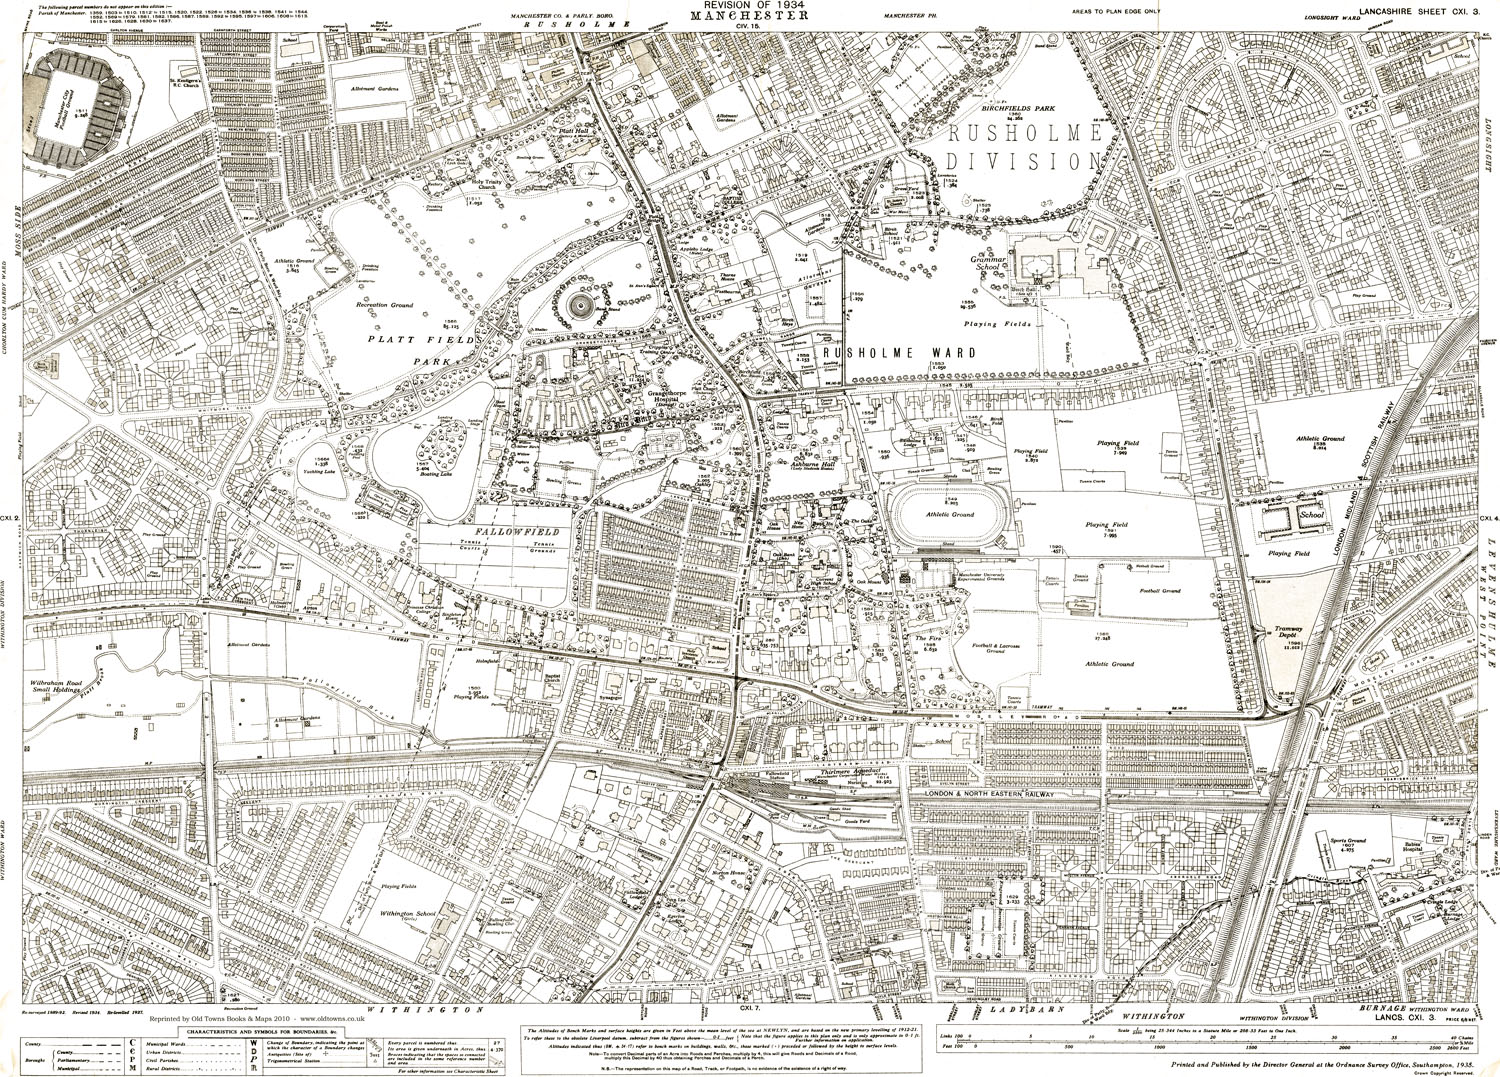 An old map of the Manchester Rusholme area Lancashire in 1934 as